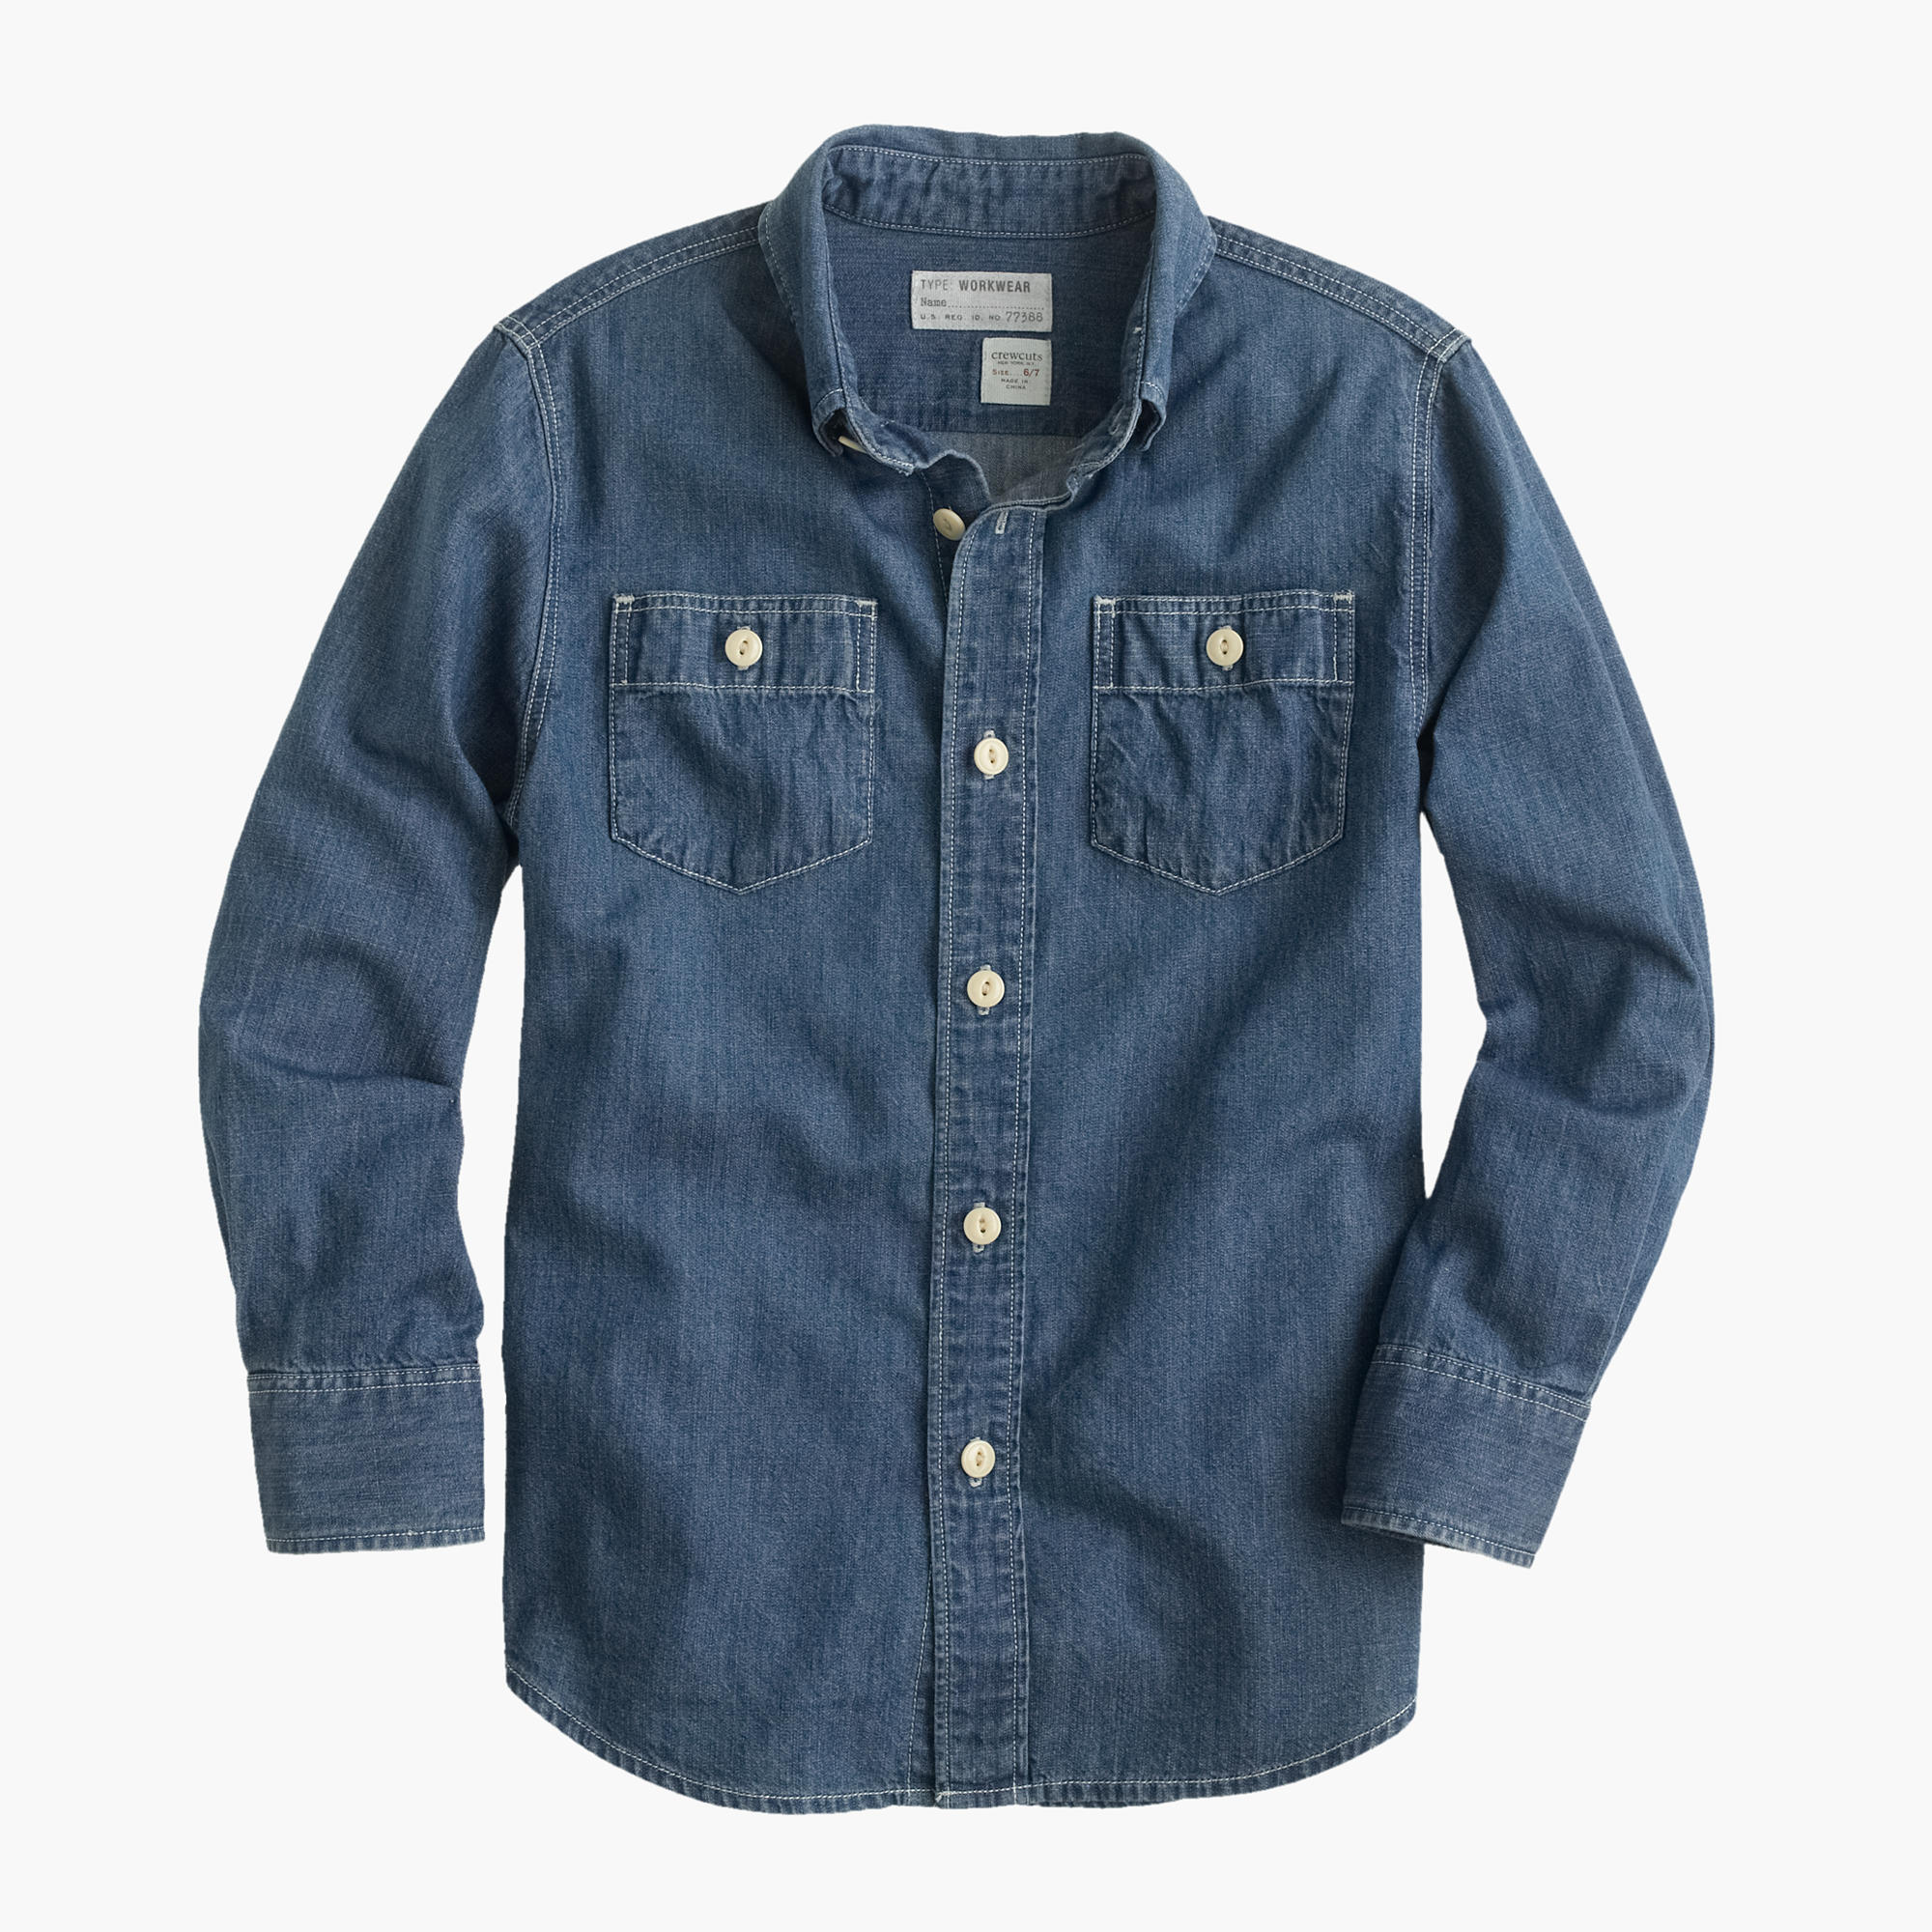 Shop the Boys' Chambray Shirt at piserialajax.cf and see the entire selection of Boys' Shirts. Free Shipping Available.